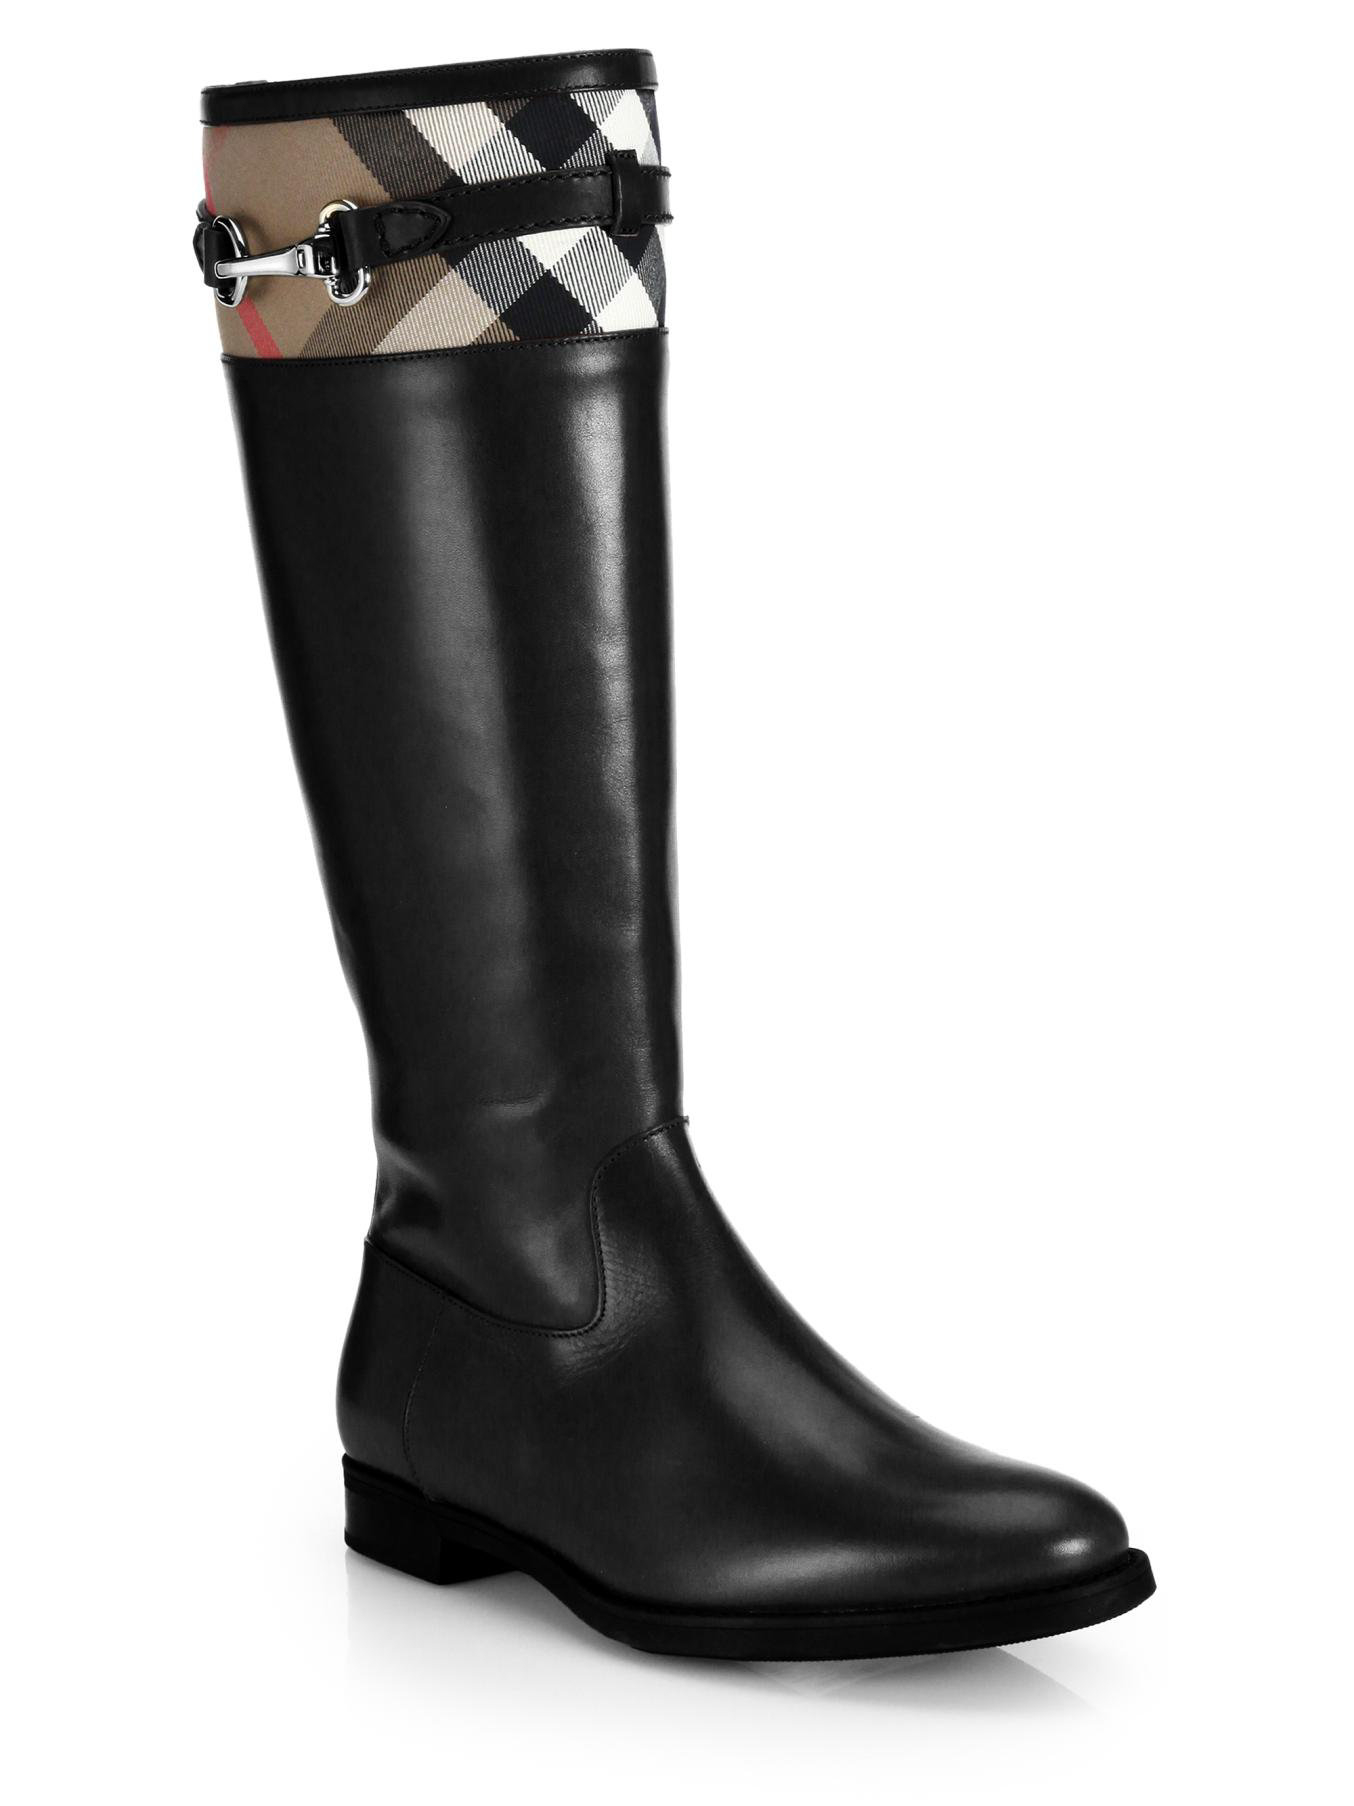 burberry dougal leather check canvas knee high boots in